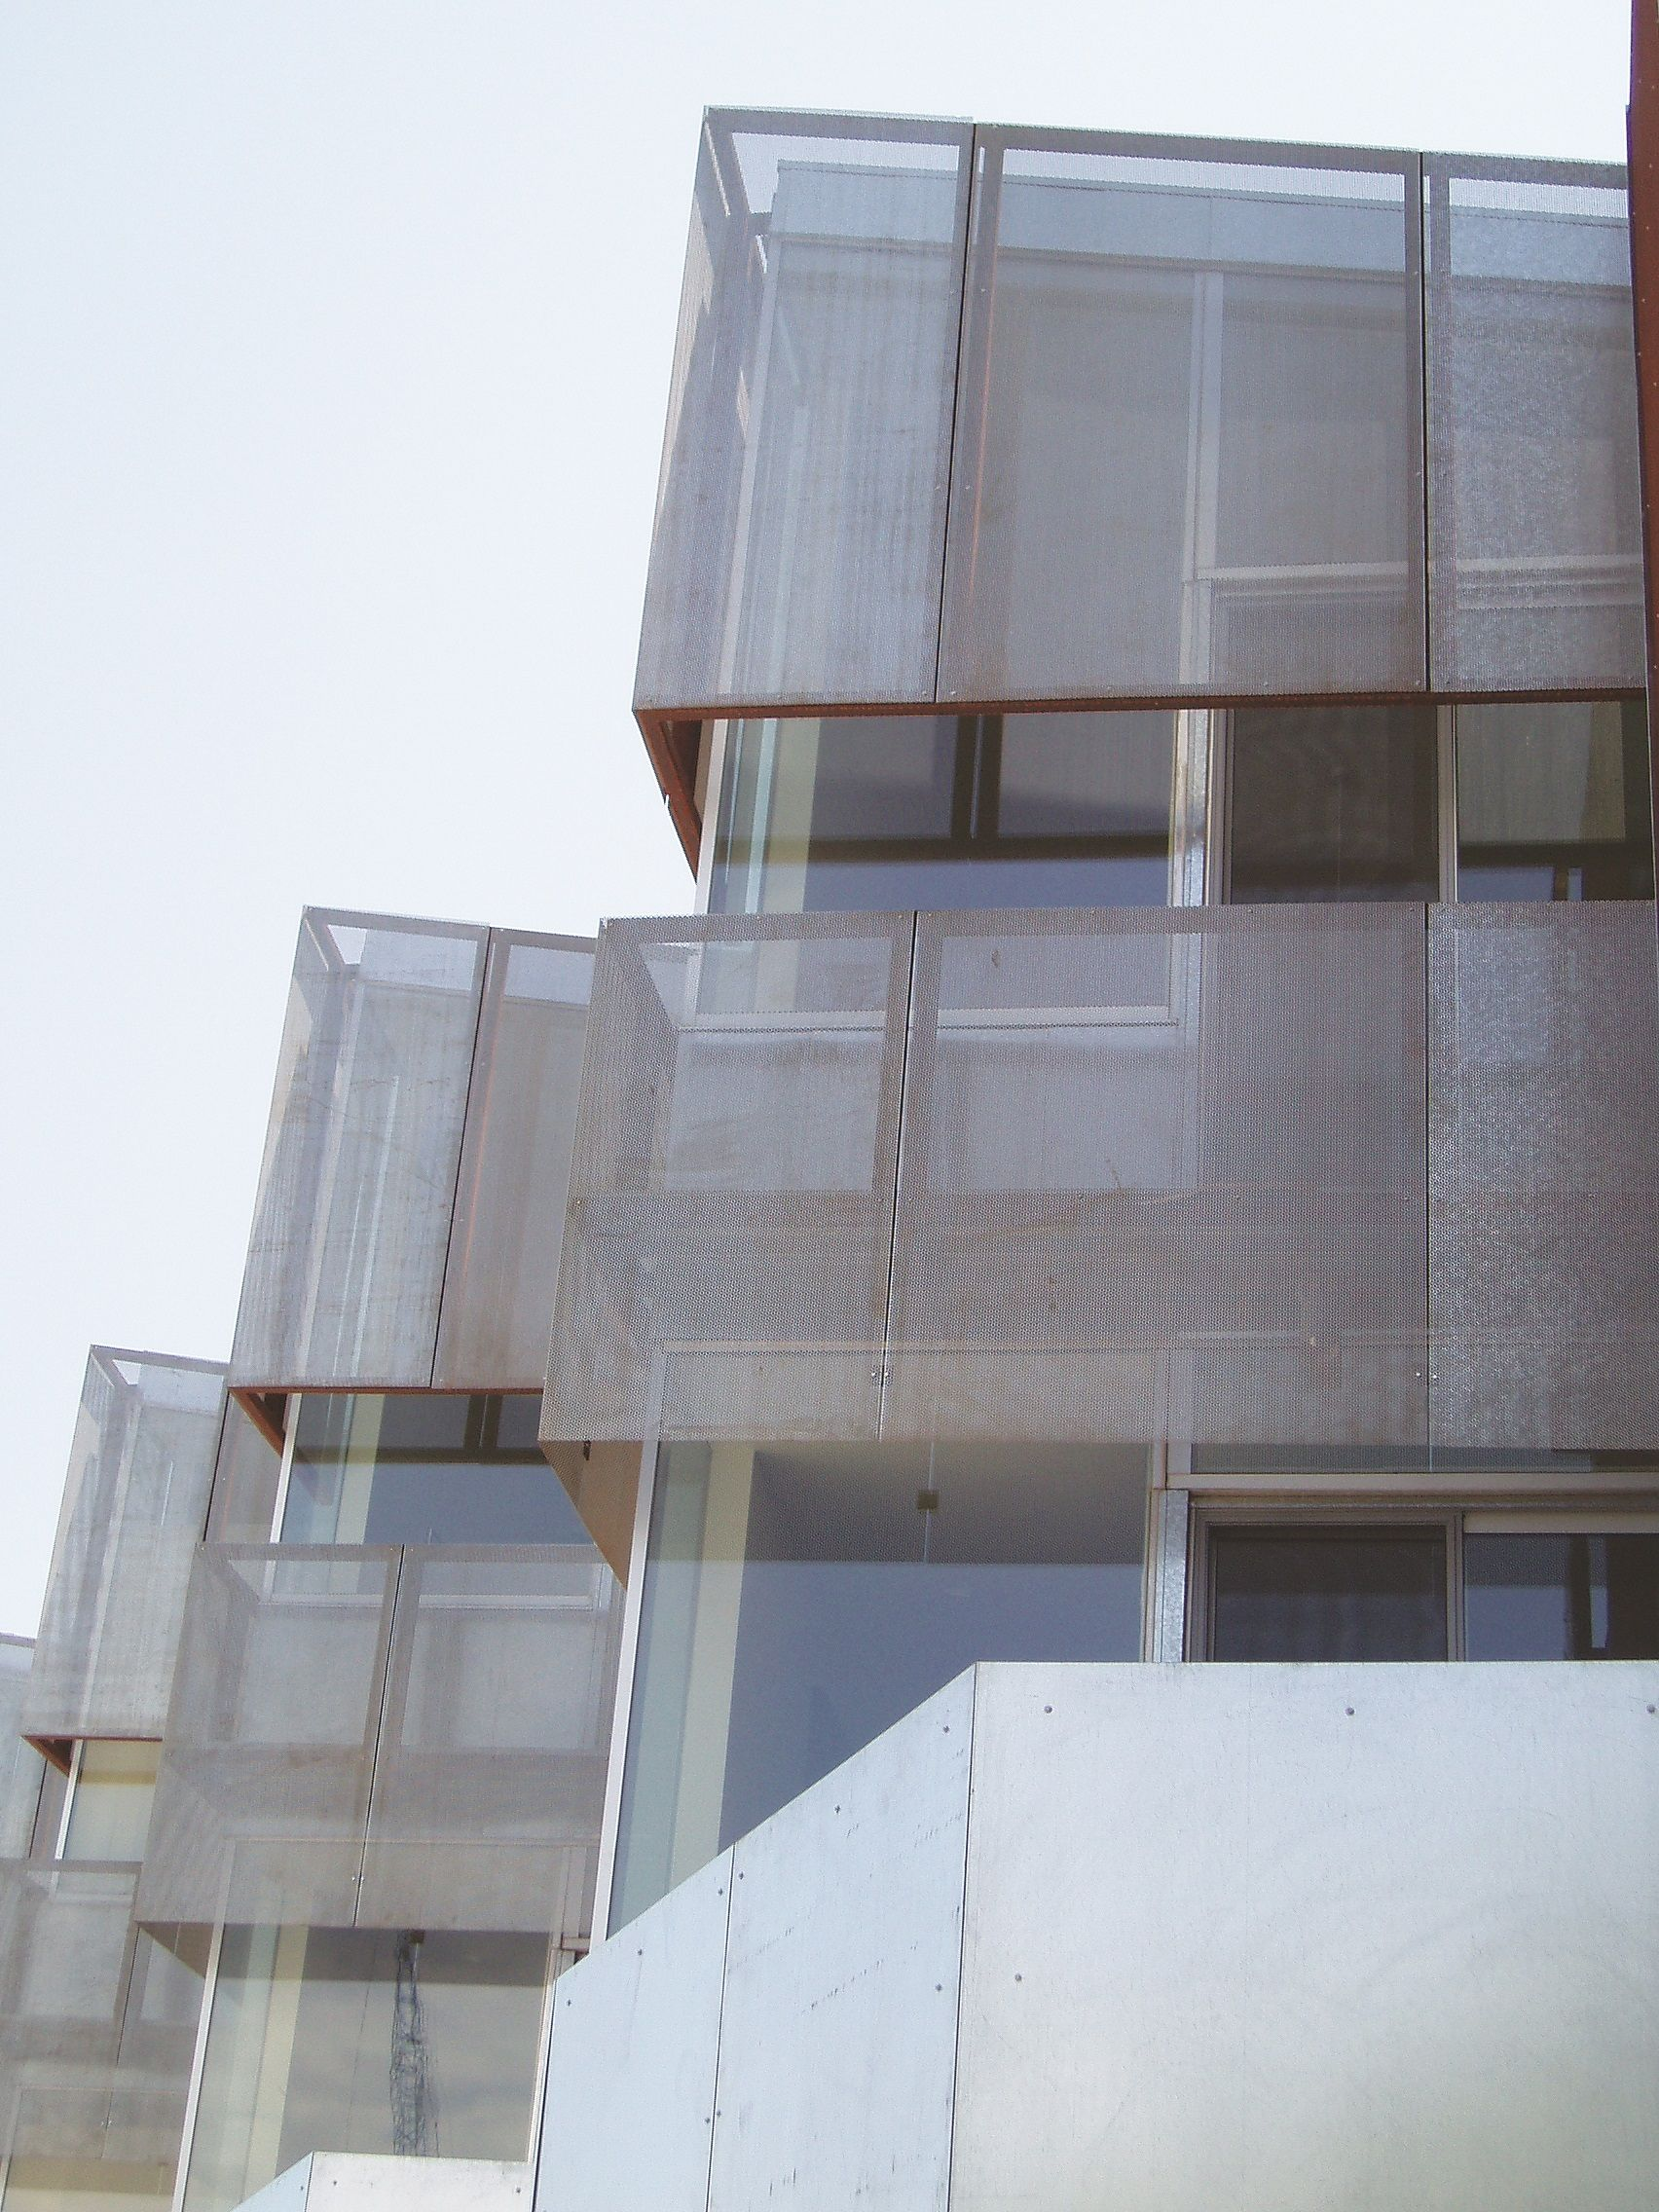 McNICHOLS® Perforated Metal used as sunshades for townhomes in Scottsdale, AZ